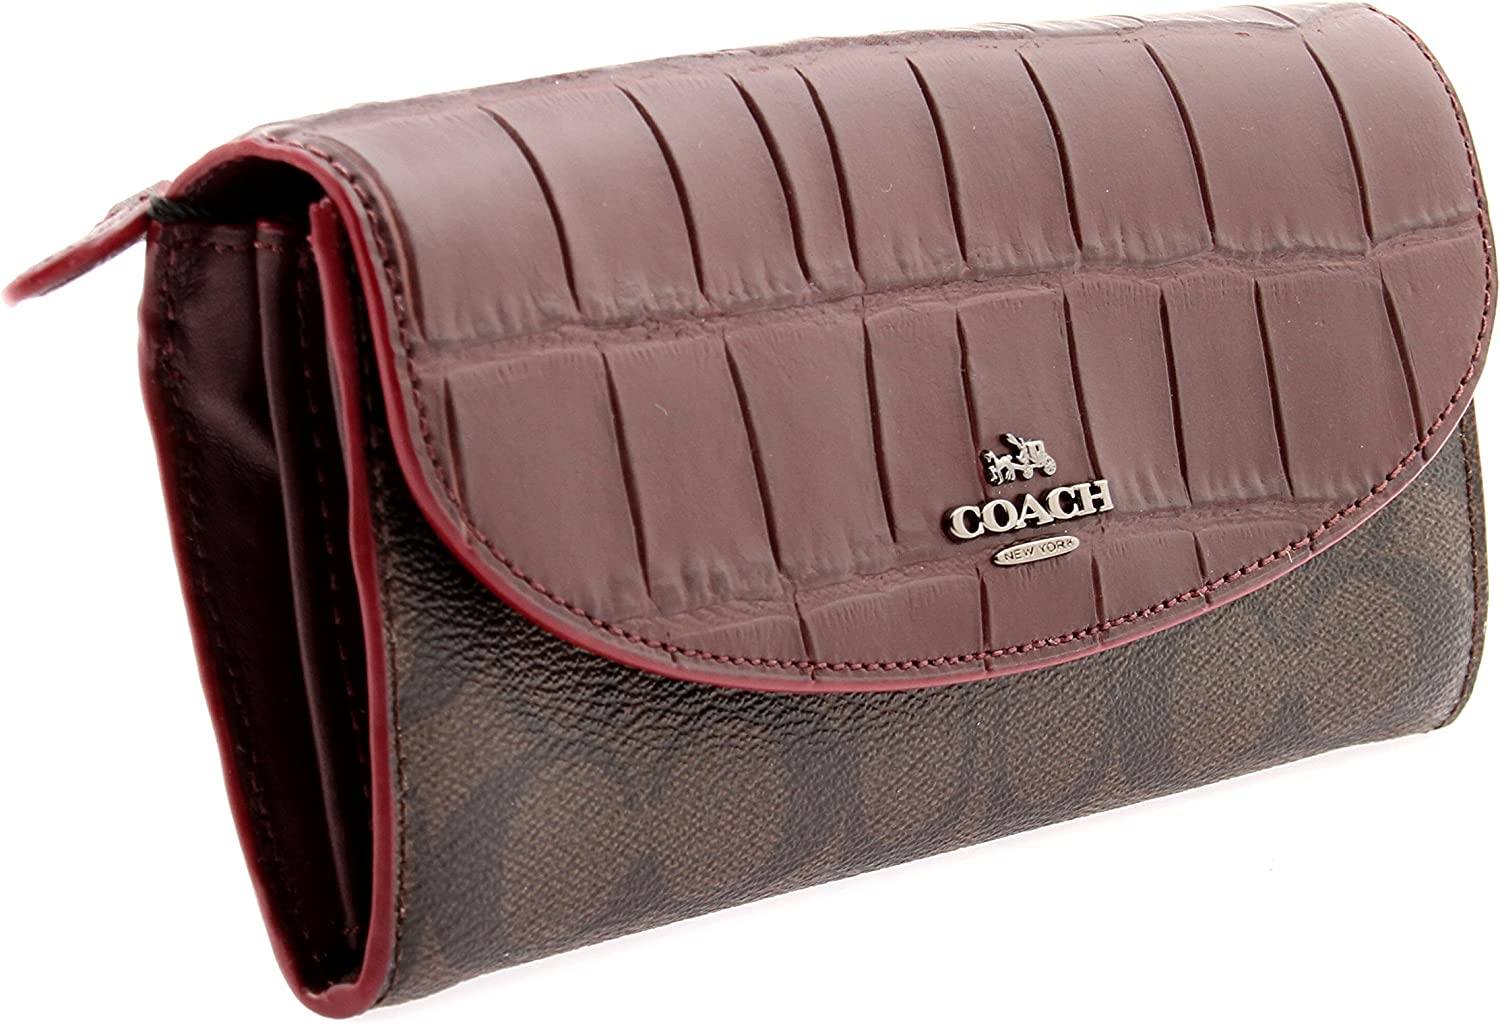 Coach Breast Pocket Wallet Signature Coated Canvas in Charcoal//Black F75013 CQ//BK